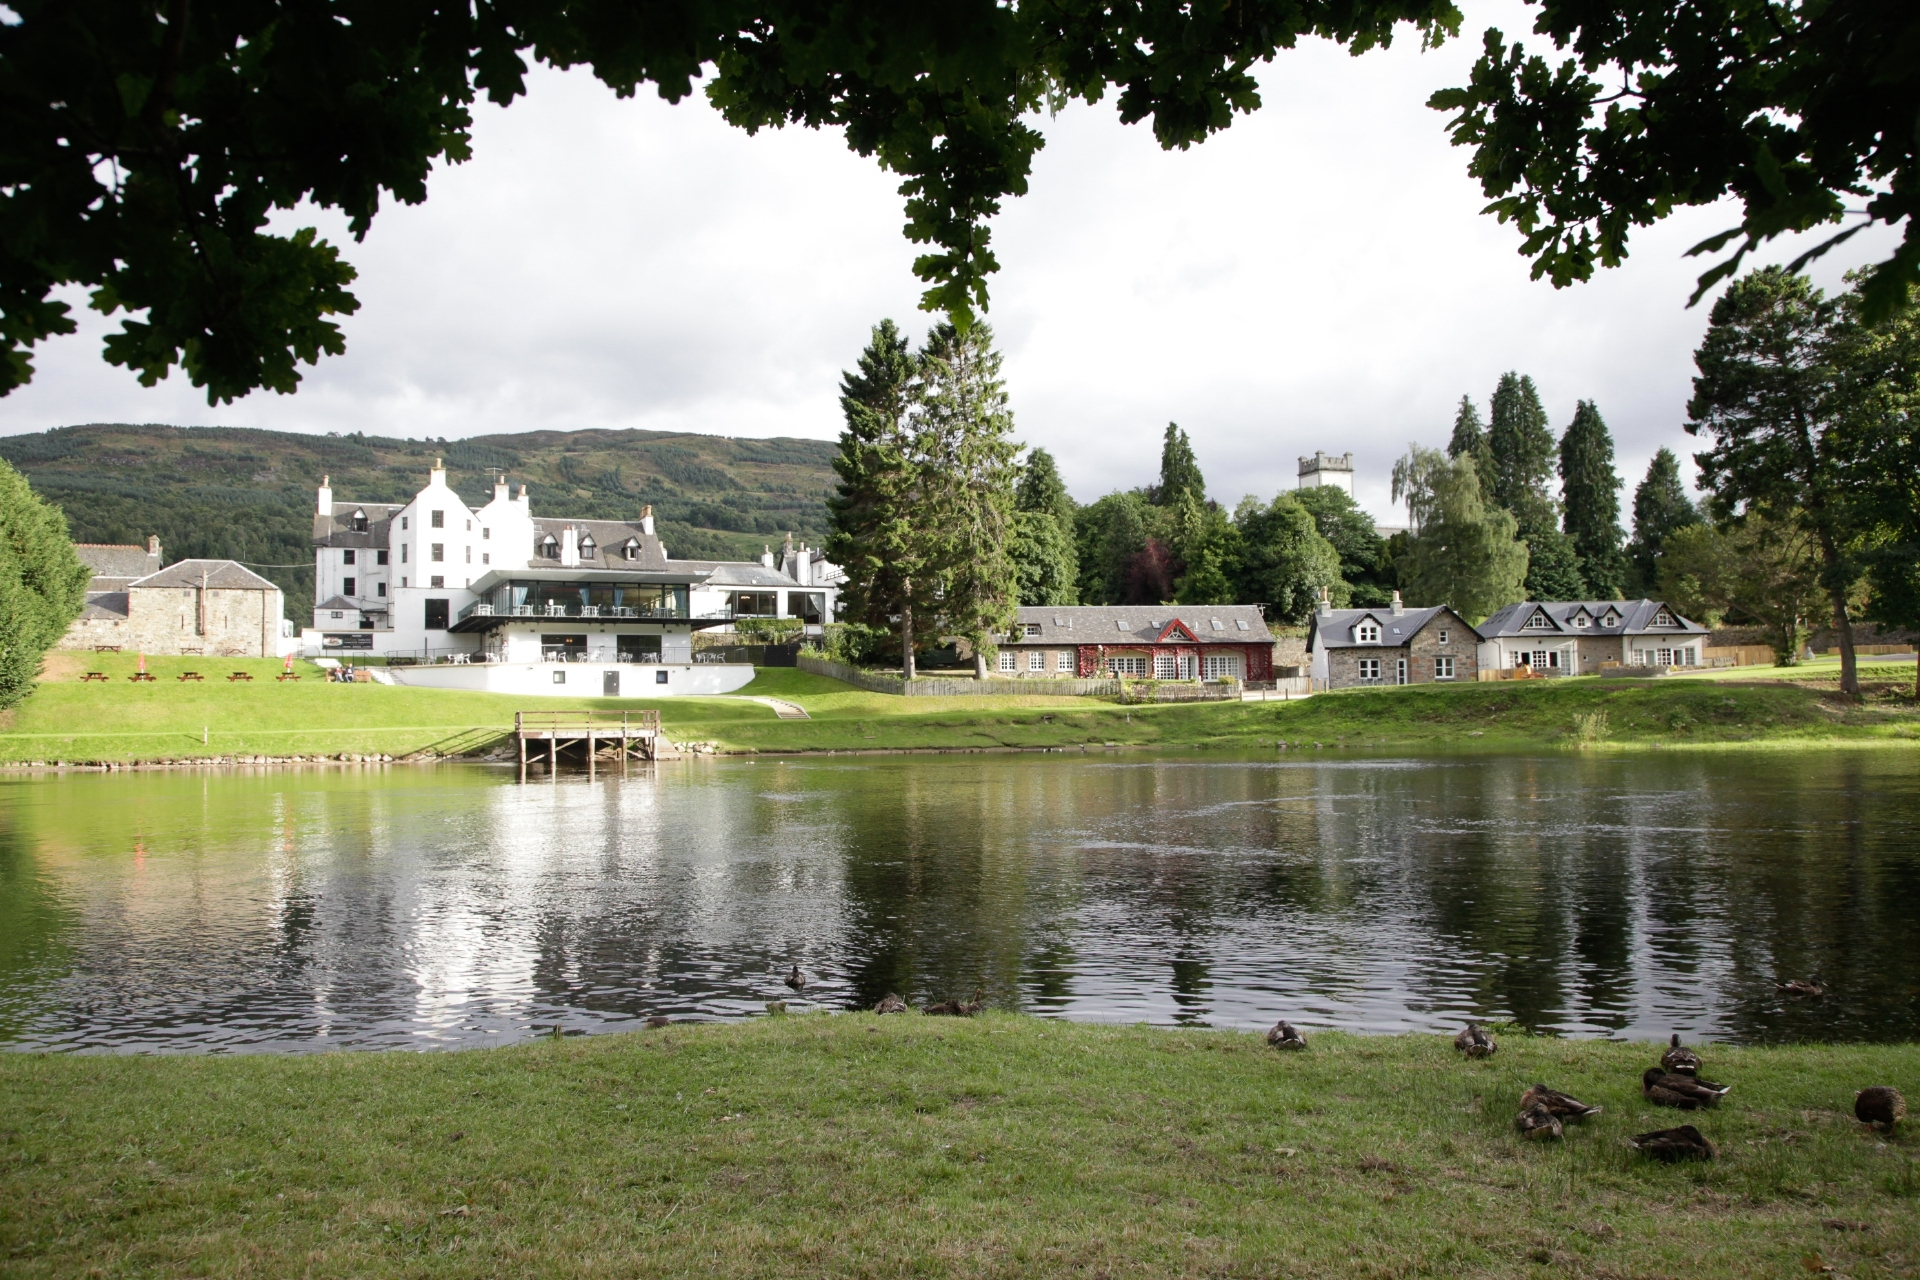 Kenmore Lodges - simply stunning.